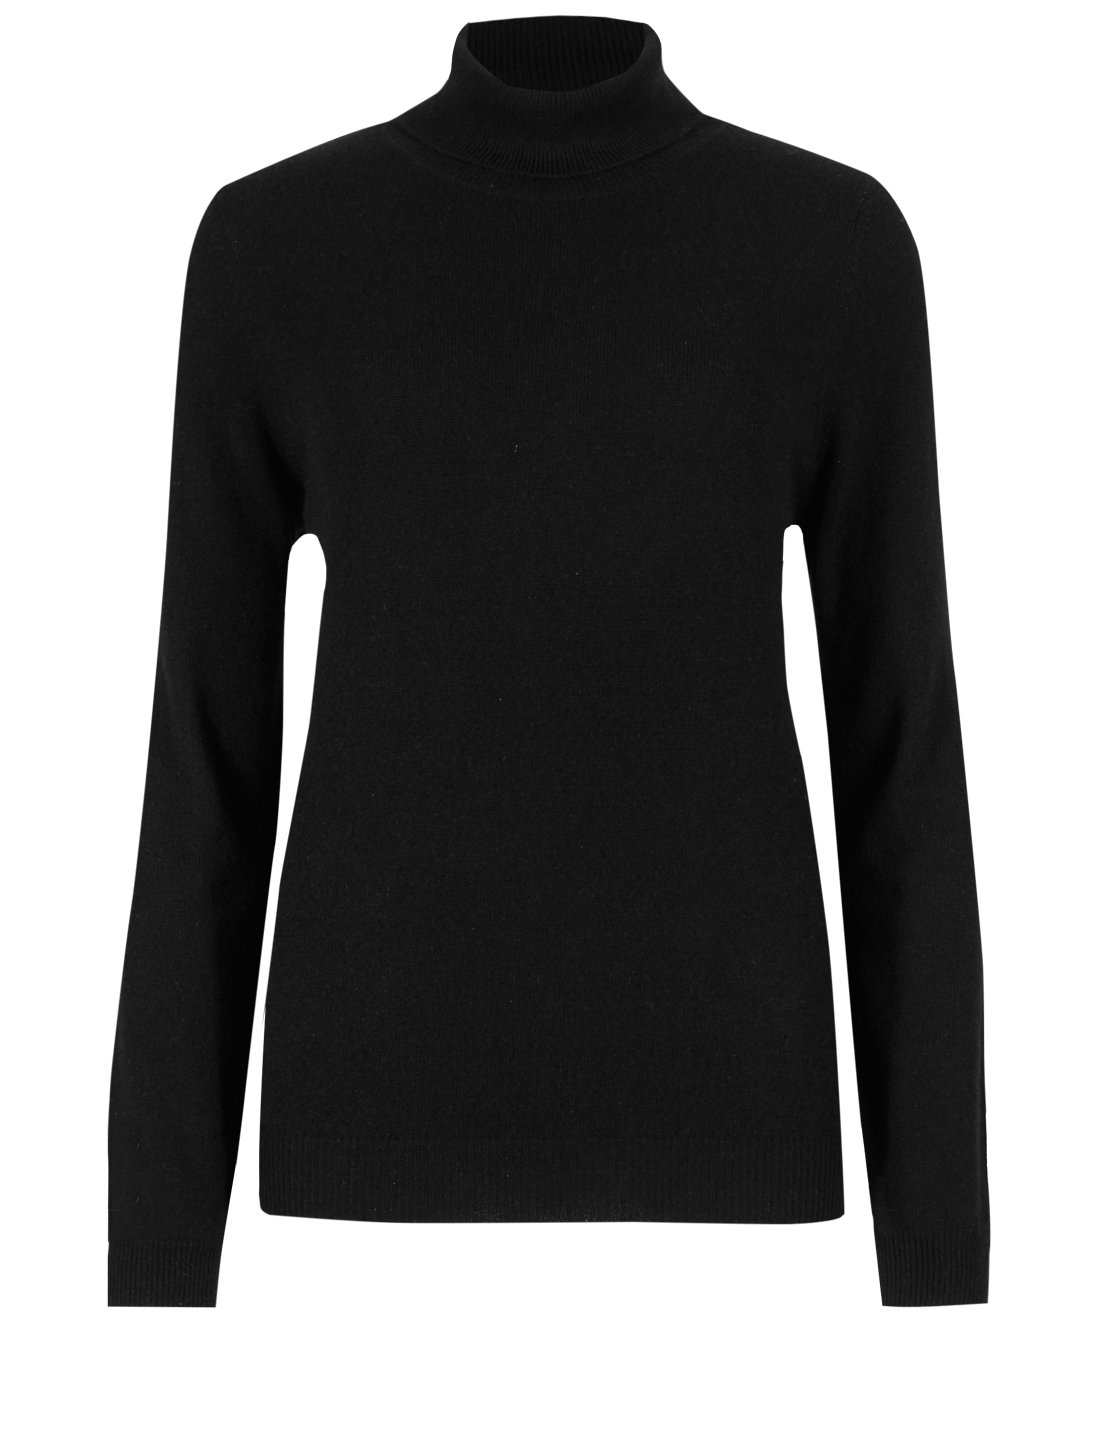 M&S Cashmere Roll Neck £79